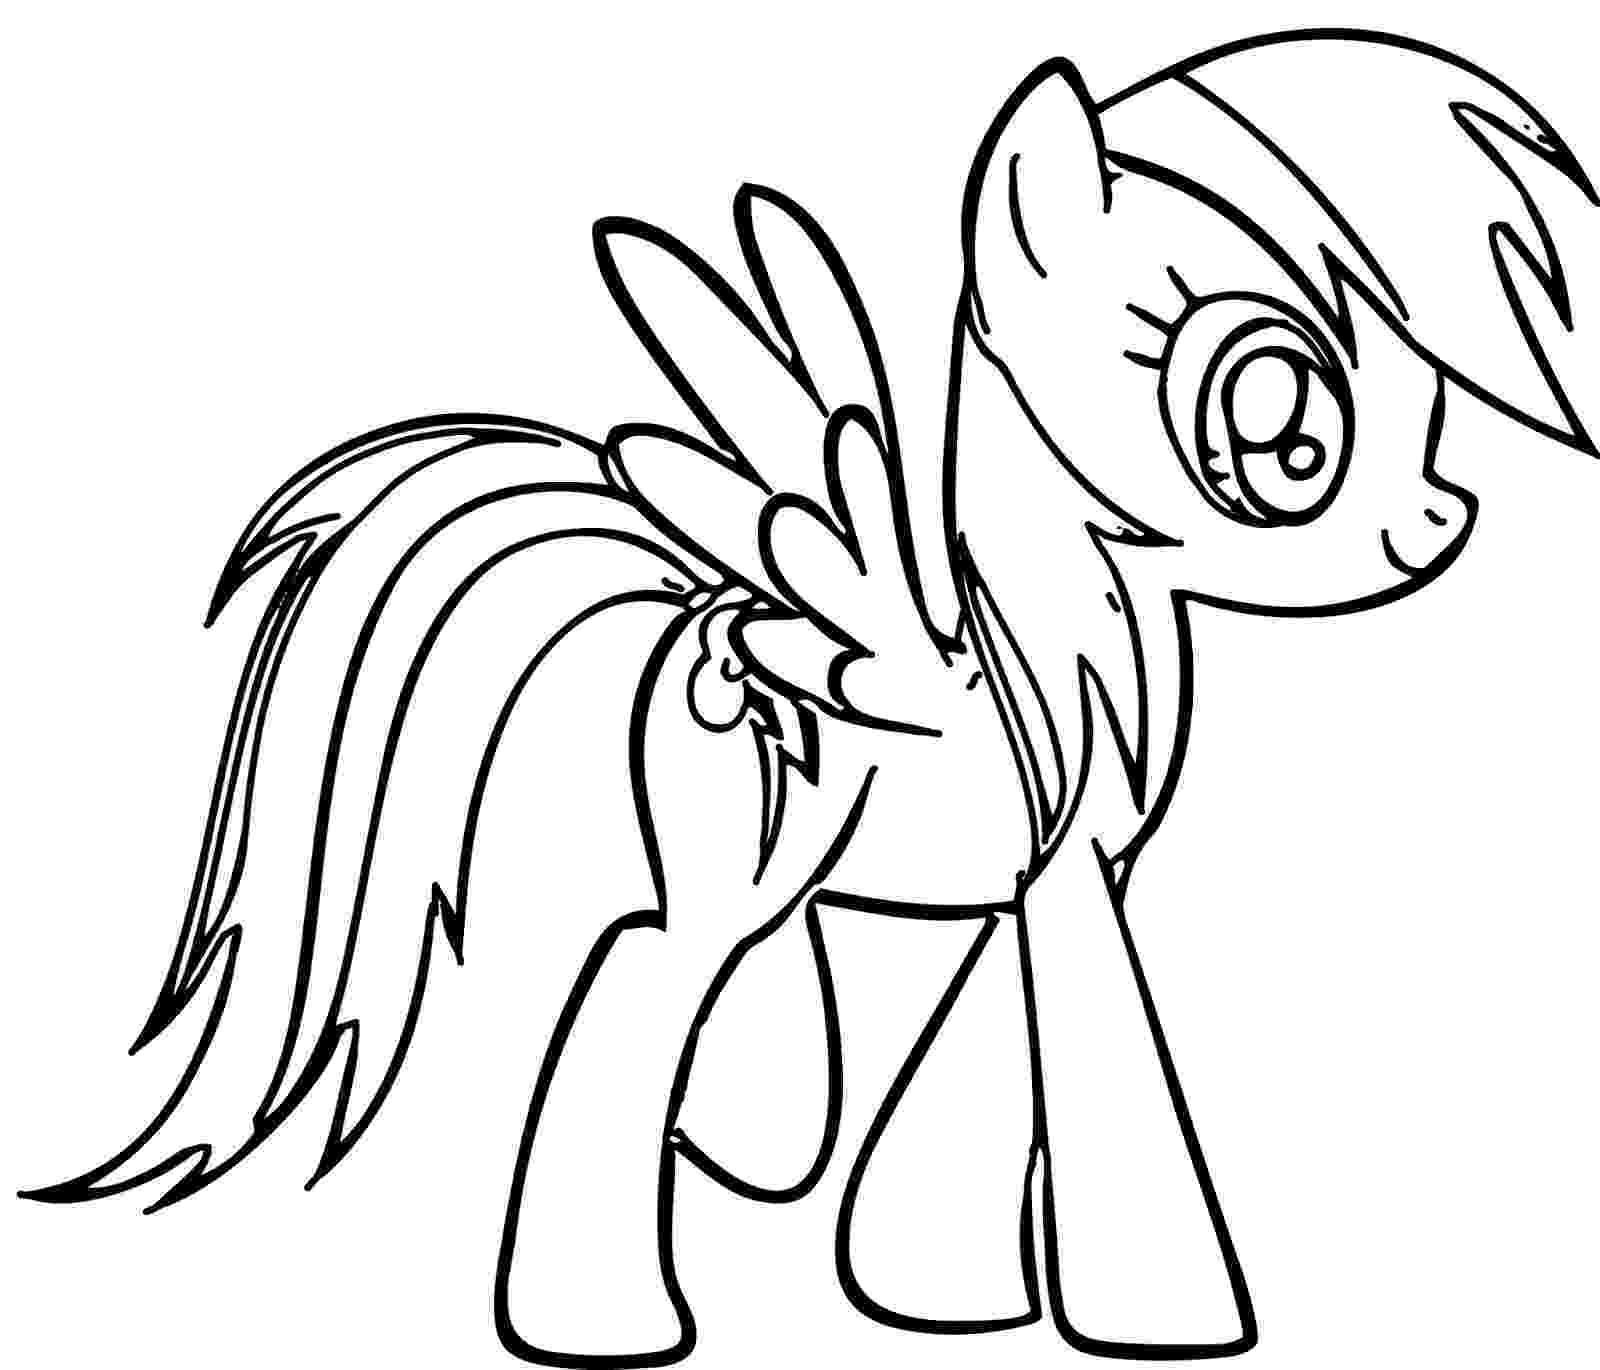 rainbow dash color page rainbow dash coloring pages best coloring pages for kids color page rainbow dash